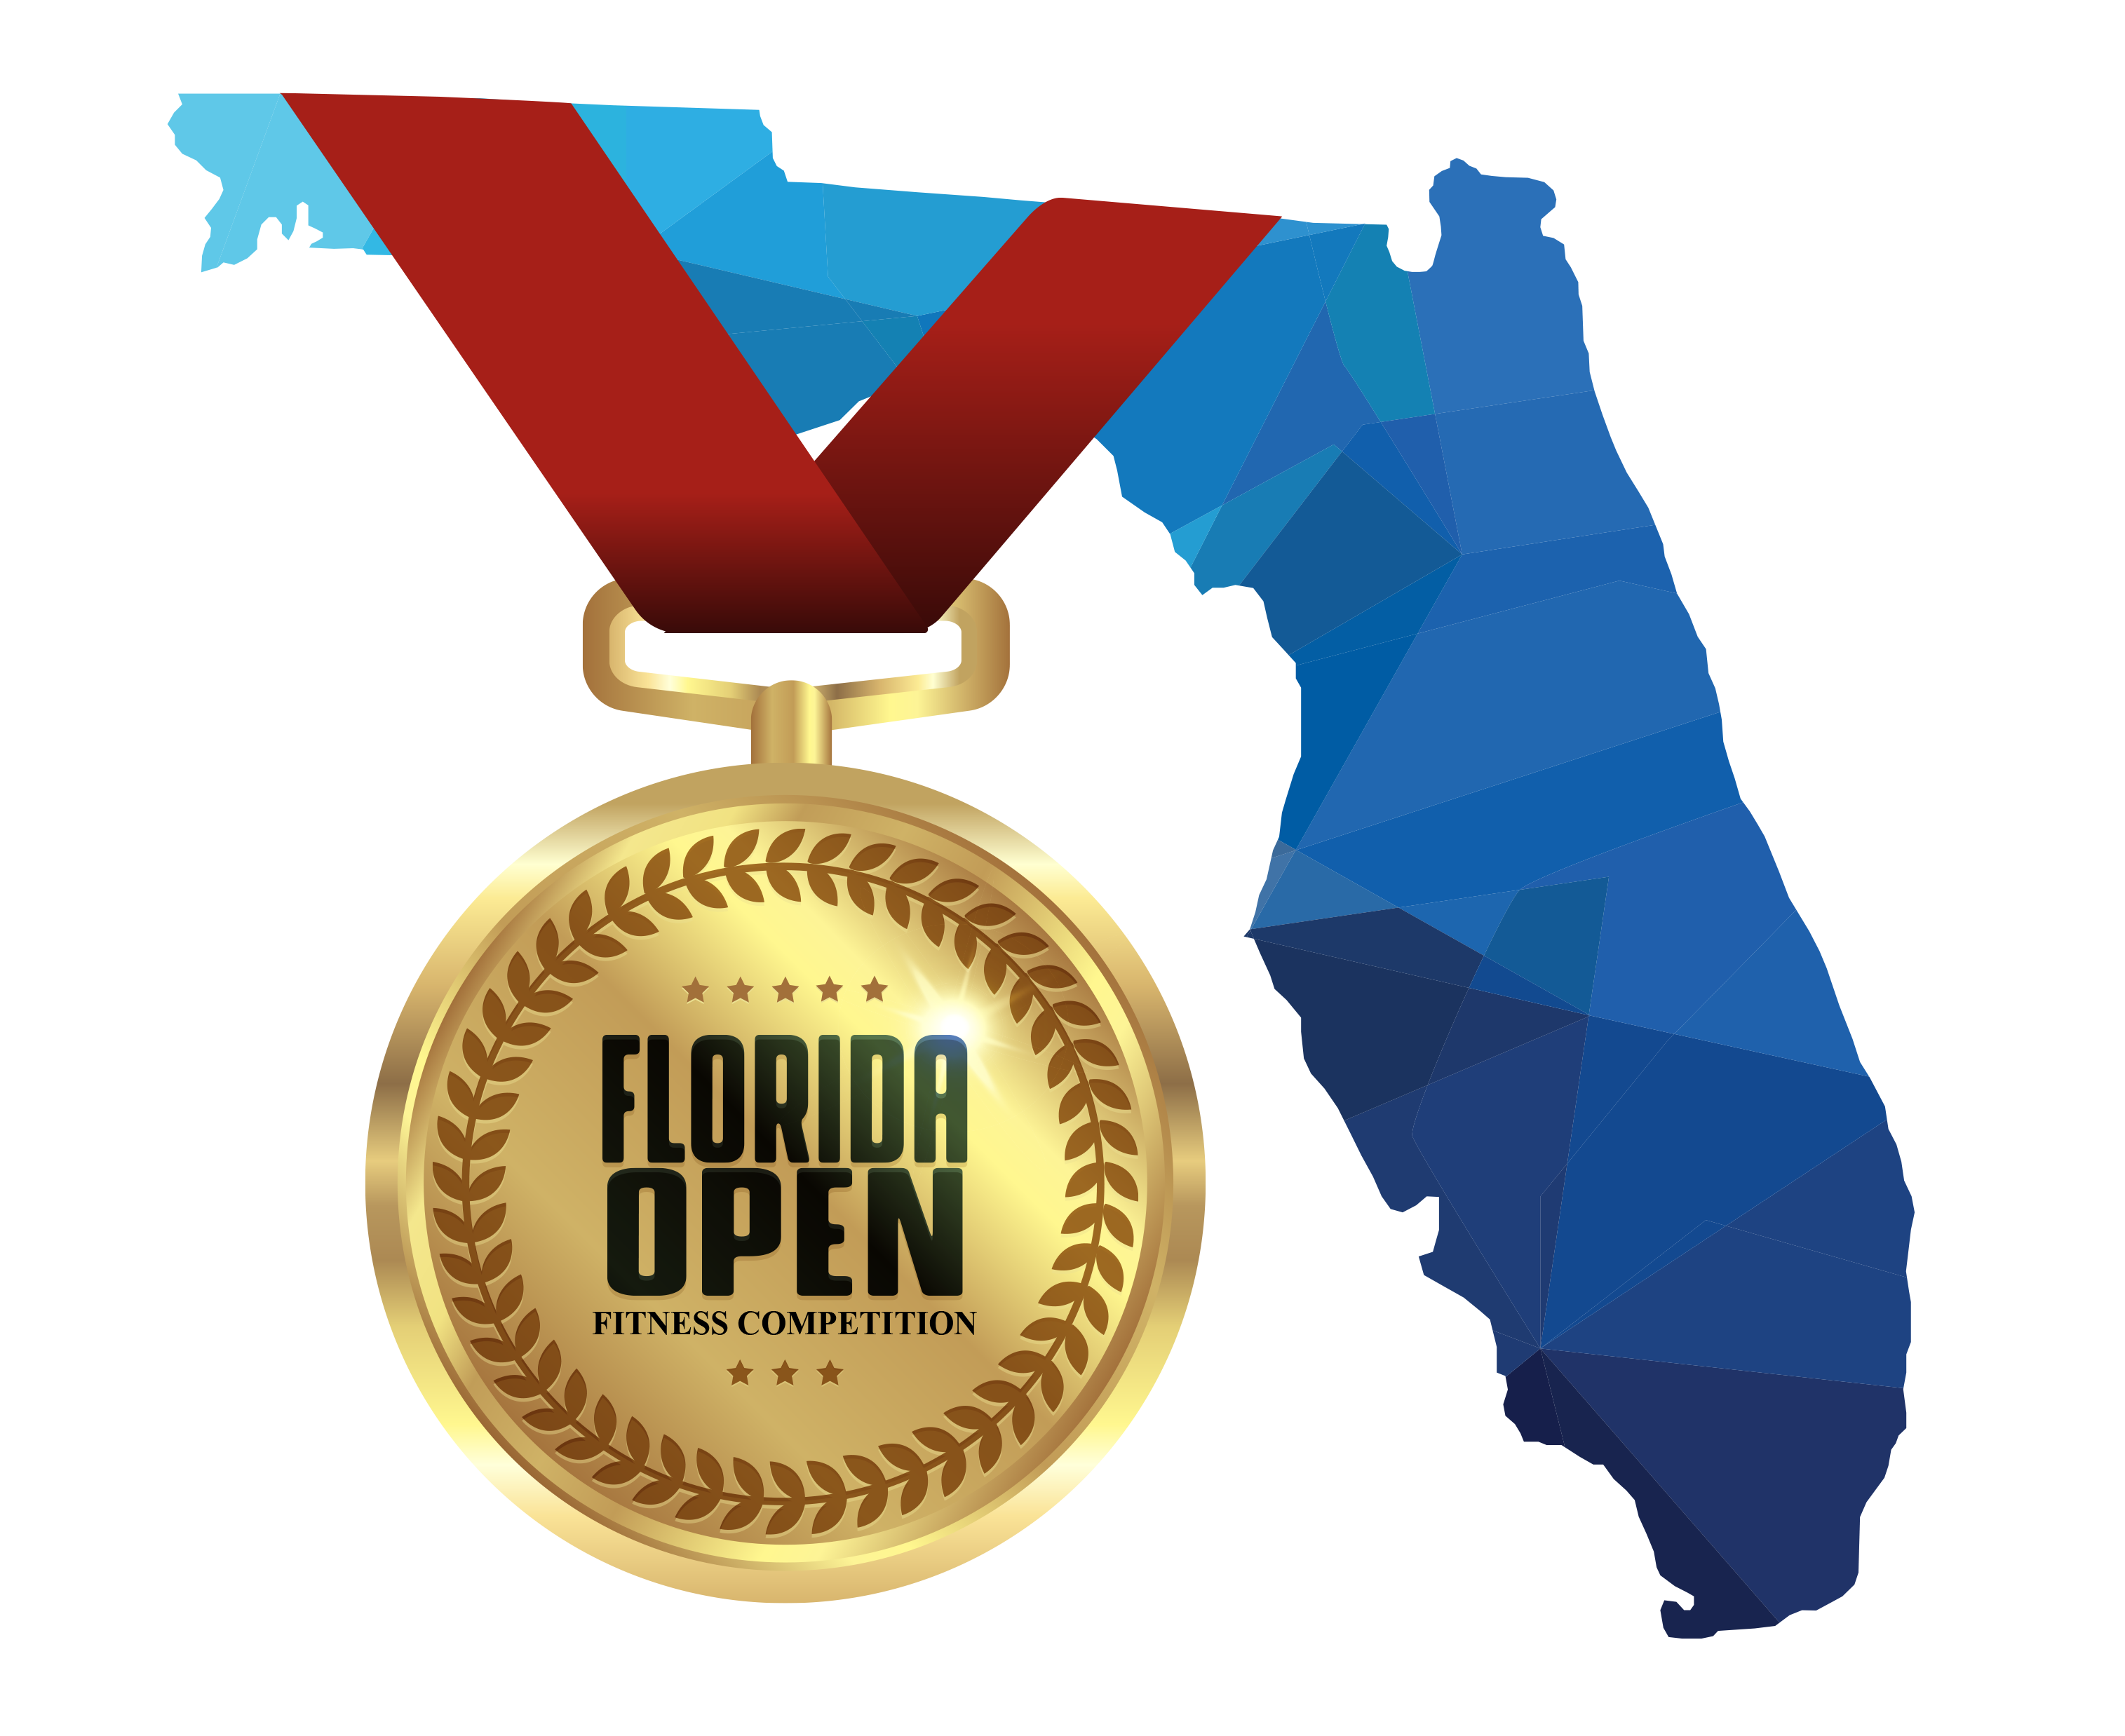 2020 Florida Open Fitness Competition